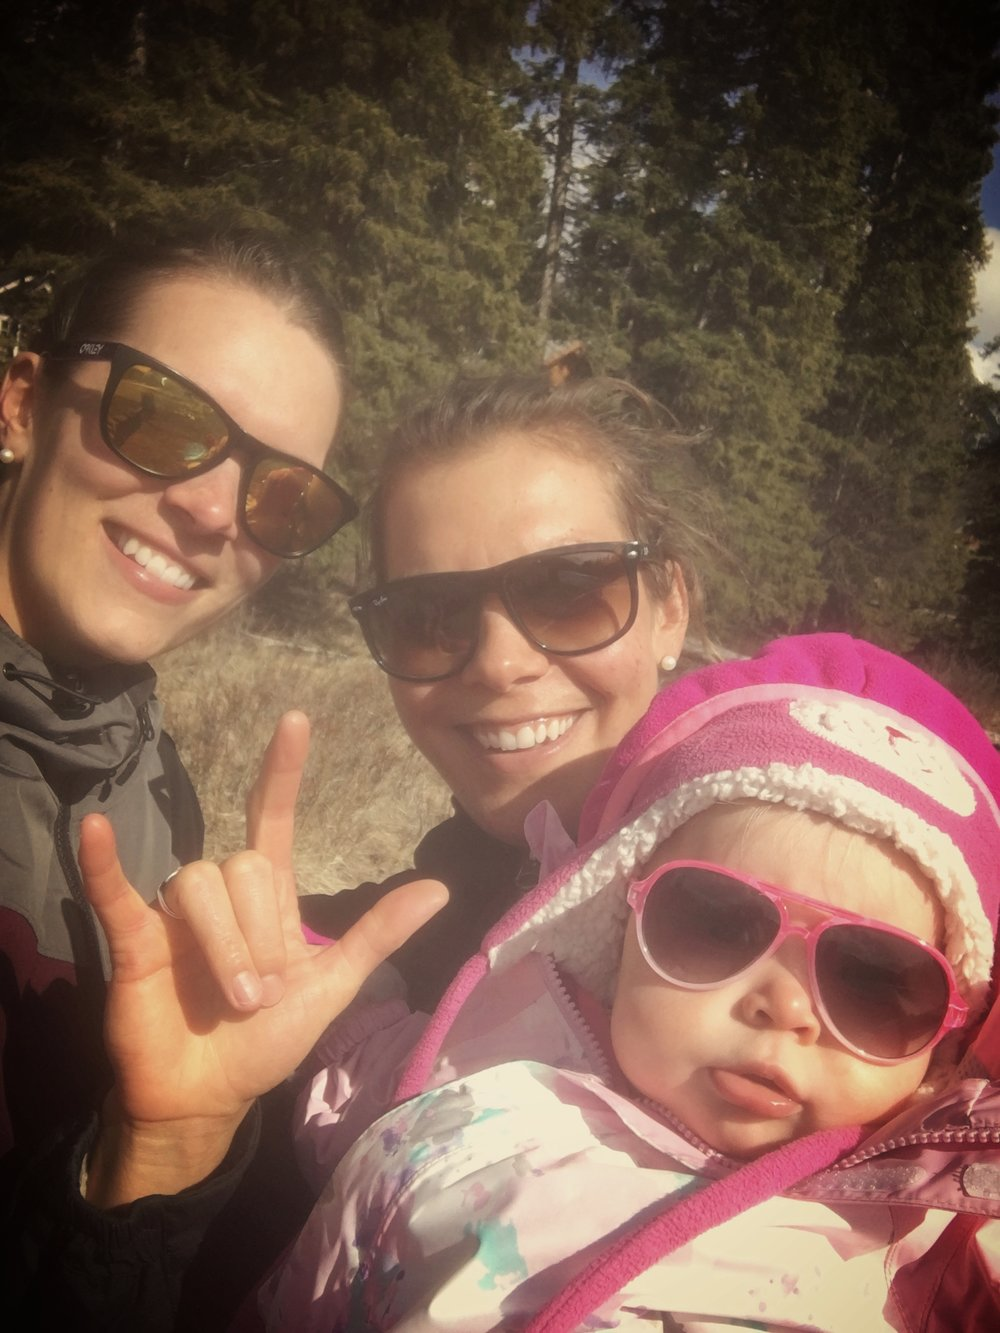 Walking with some rock stars. My sister, Ange, and niece, Evia. This little peanut is my new favourite bundle to hang with. So much love!!